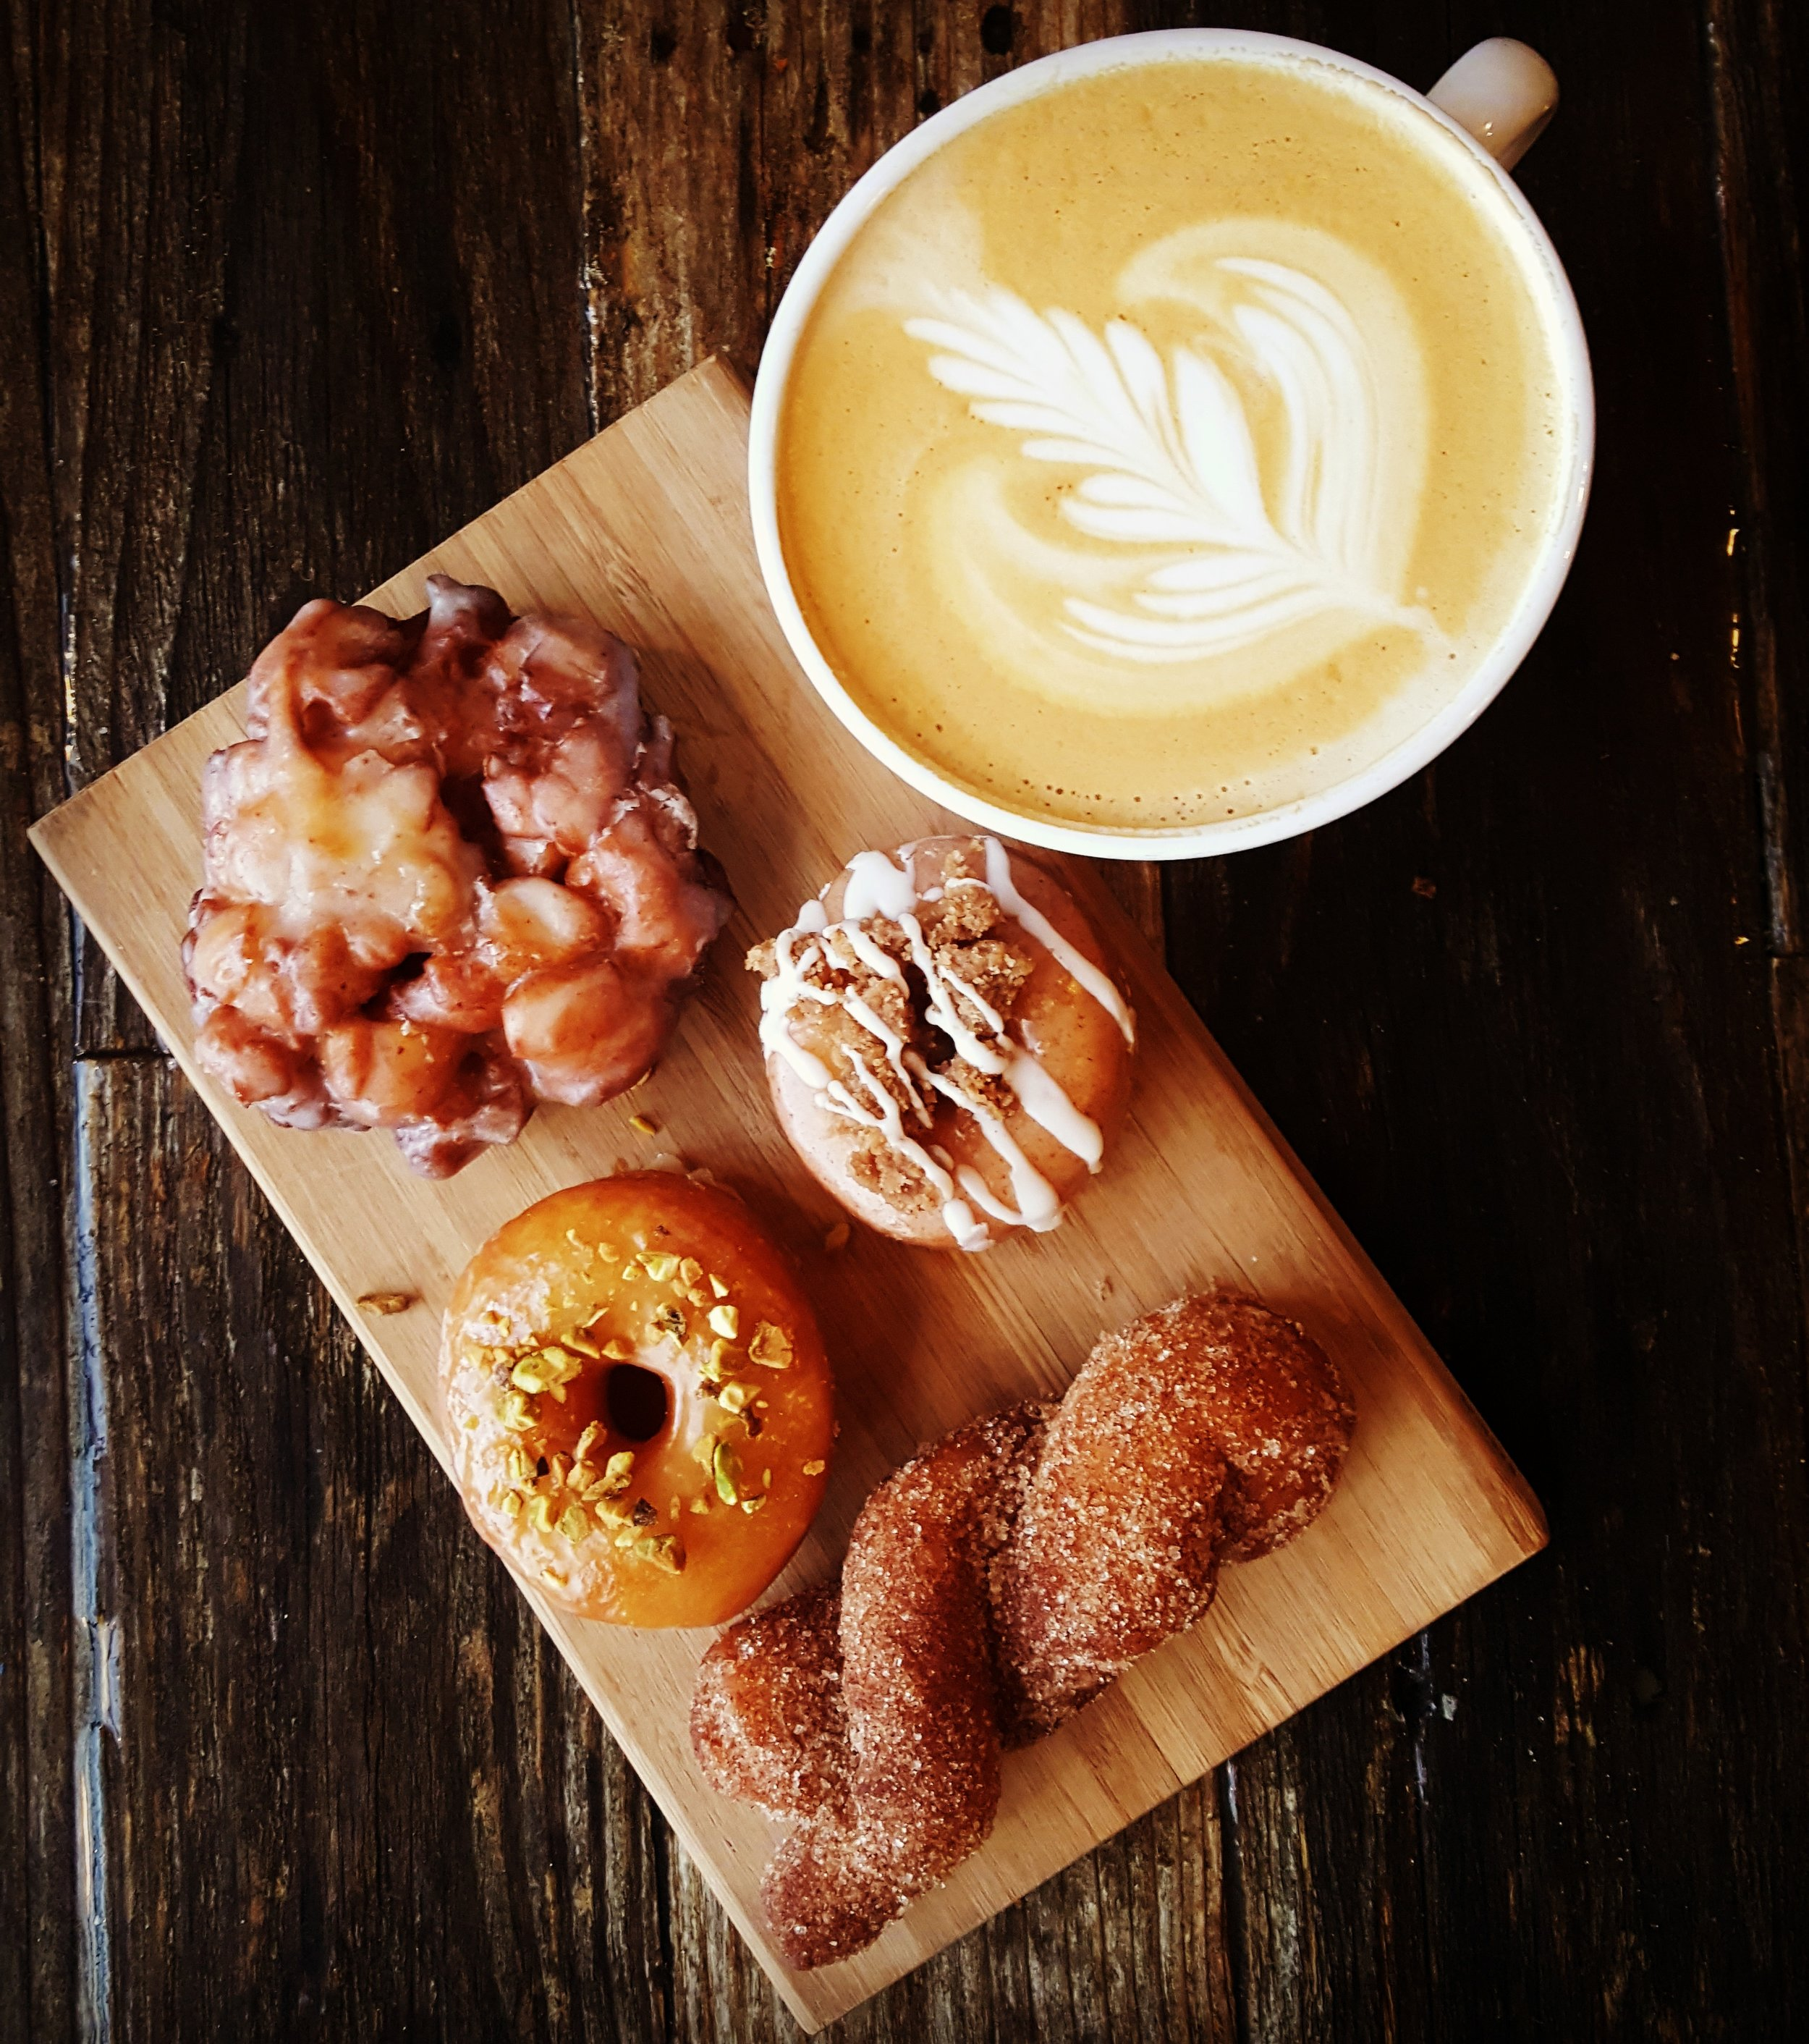 - We carry Cardamom's bakery throughout the week:including scones, croissants, muffins, brownies, vegan gluten free peanut butter bars, lemon bars and more. Hello Sugar serves artisan doughnuts and is planning on opening a food truck this spring. We carry their doughnuts Wednesday -Saturdays!